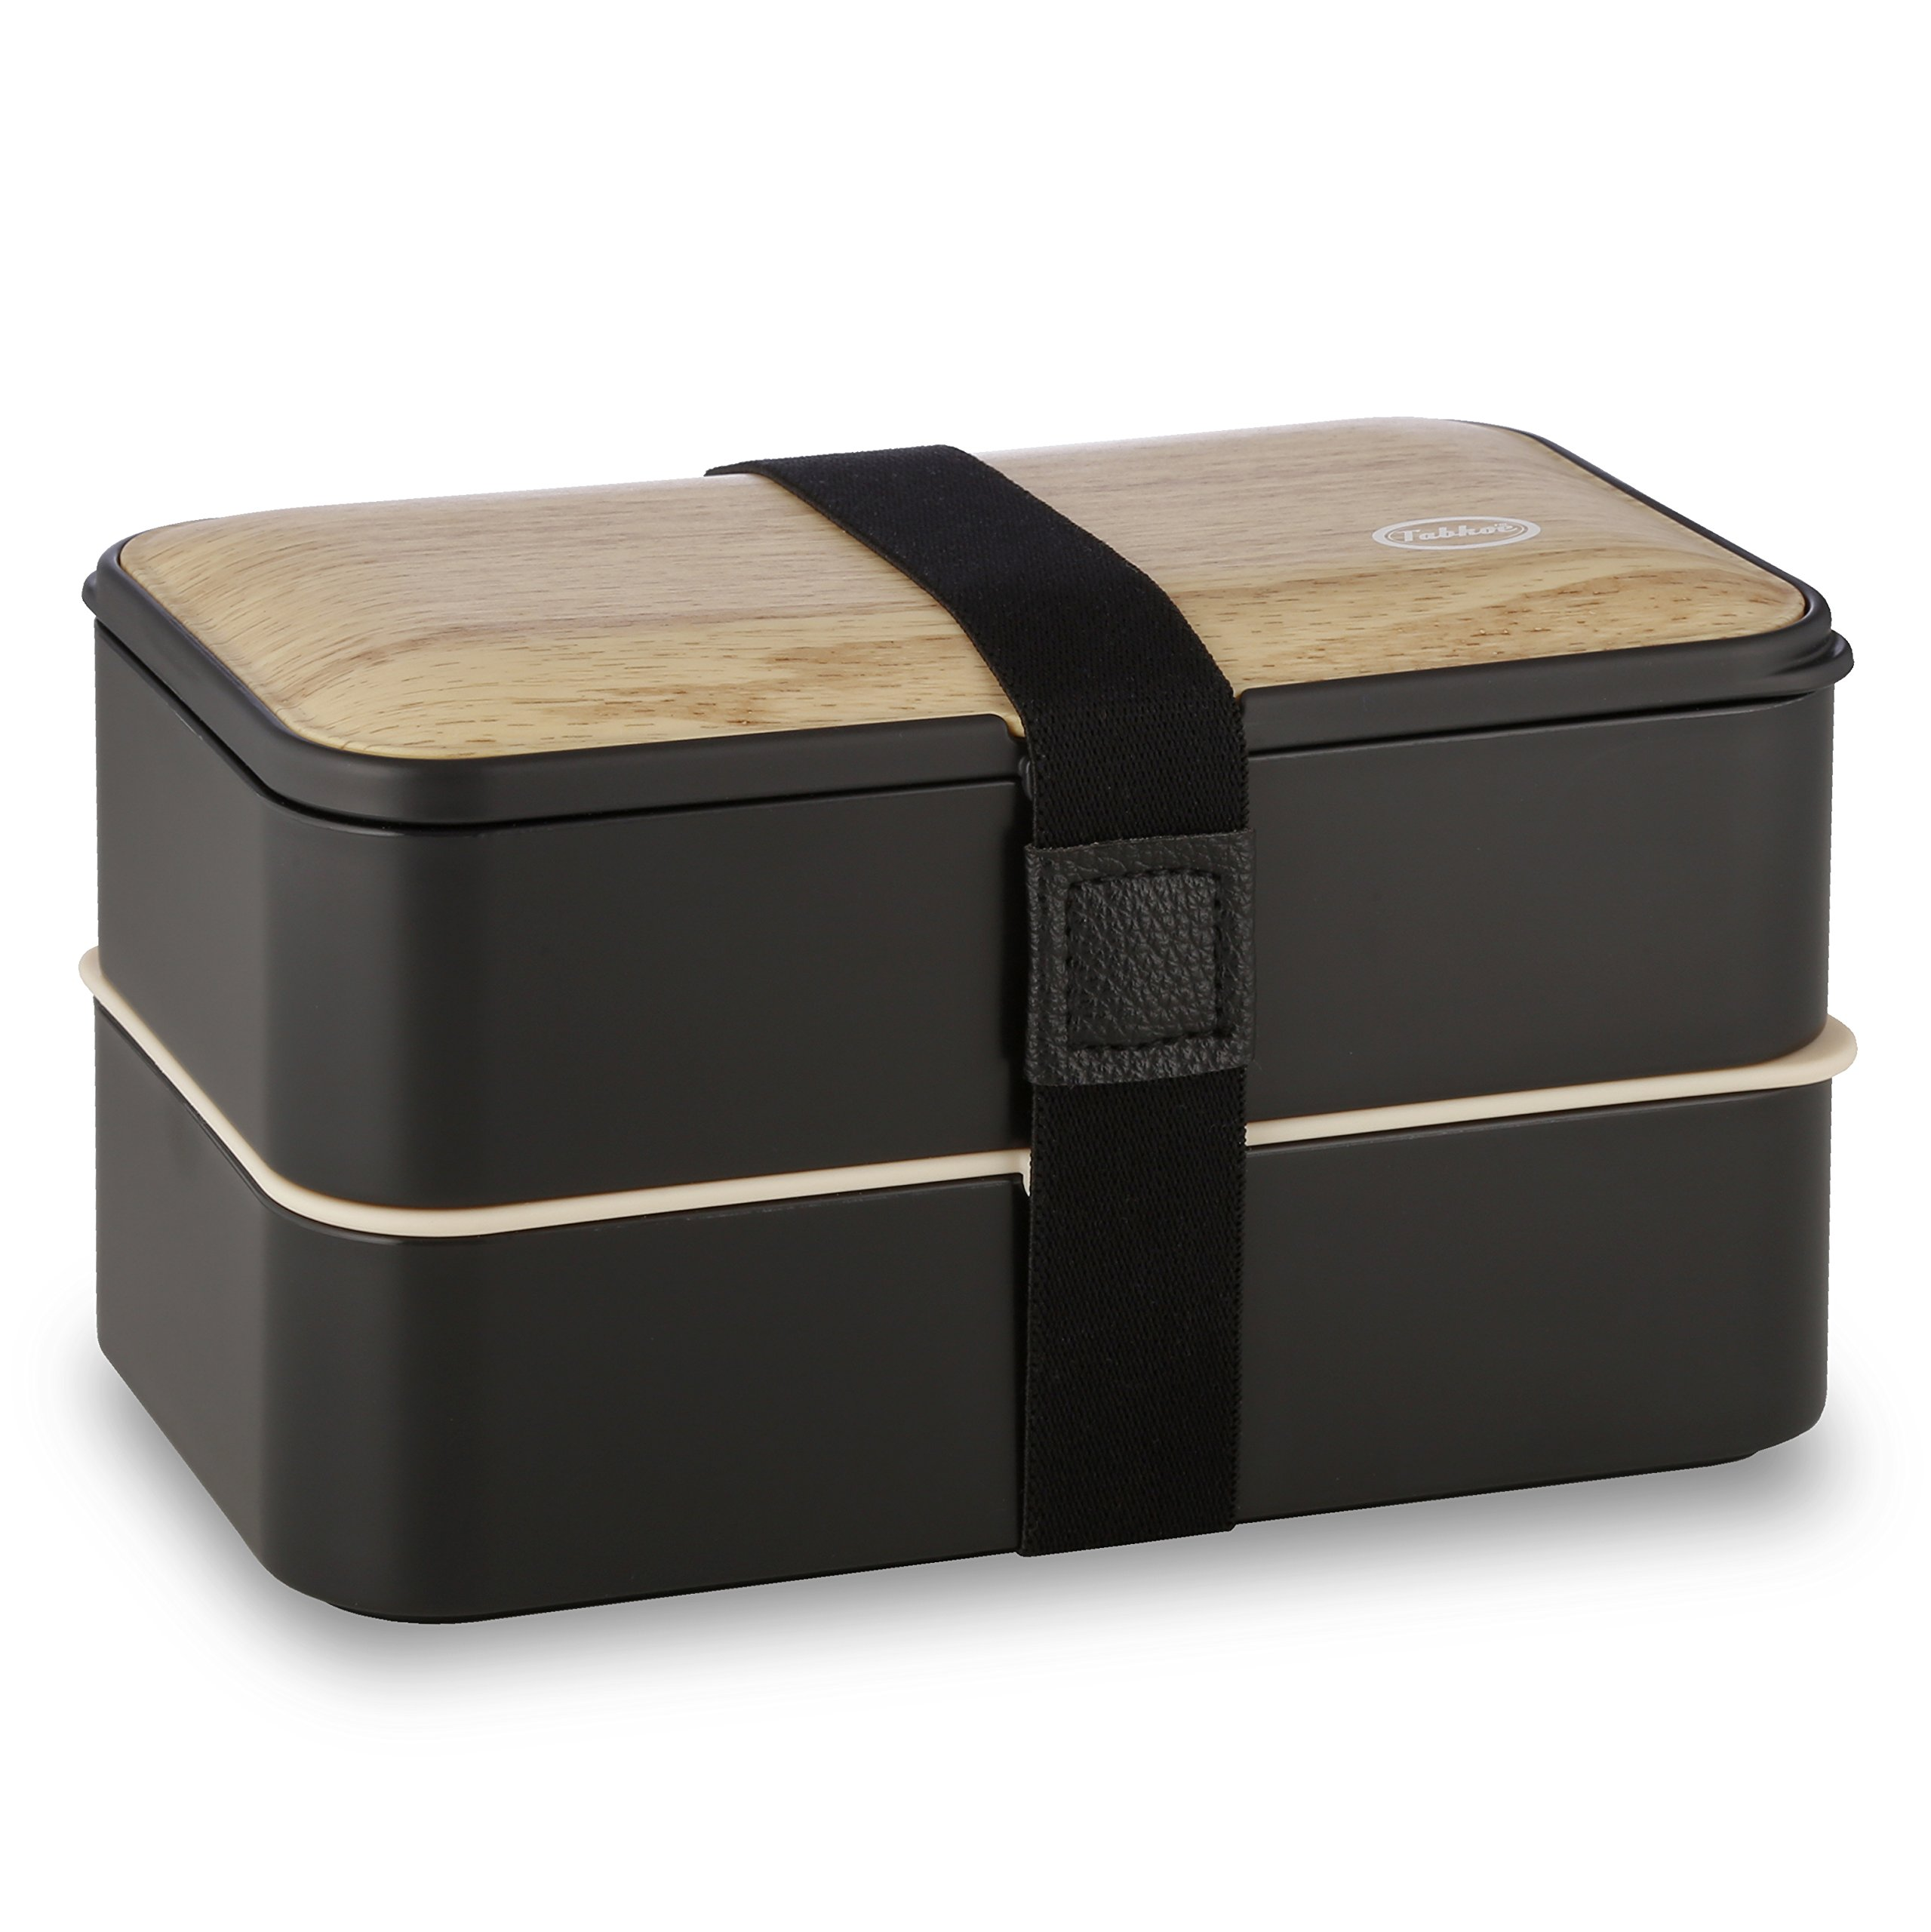 Tabkoe Bento Lunch Box Stackable Meal Prep Food Storage Containers Set, Reusable, Microwavable, BPA-Free, Freezer-Safe, Dishwasher-Safe, Insulated 2-Tier Snack Boxes with Leak-Proof Lids & Cutlery